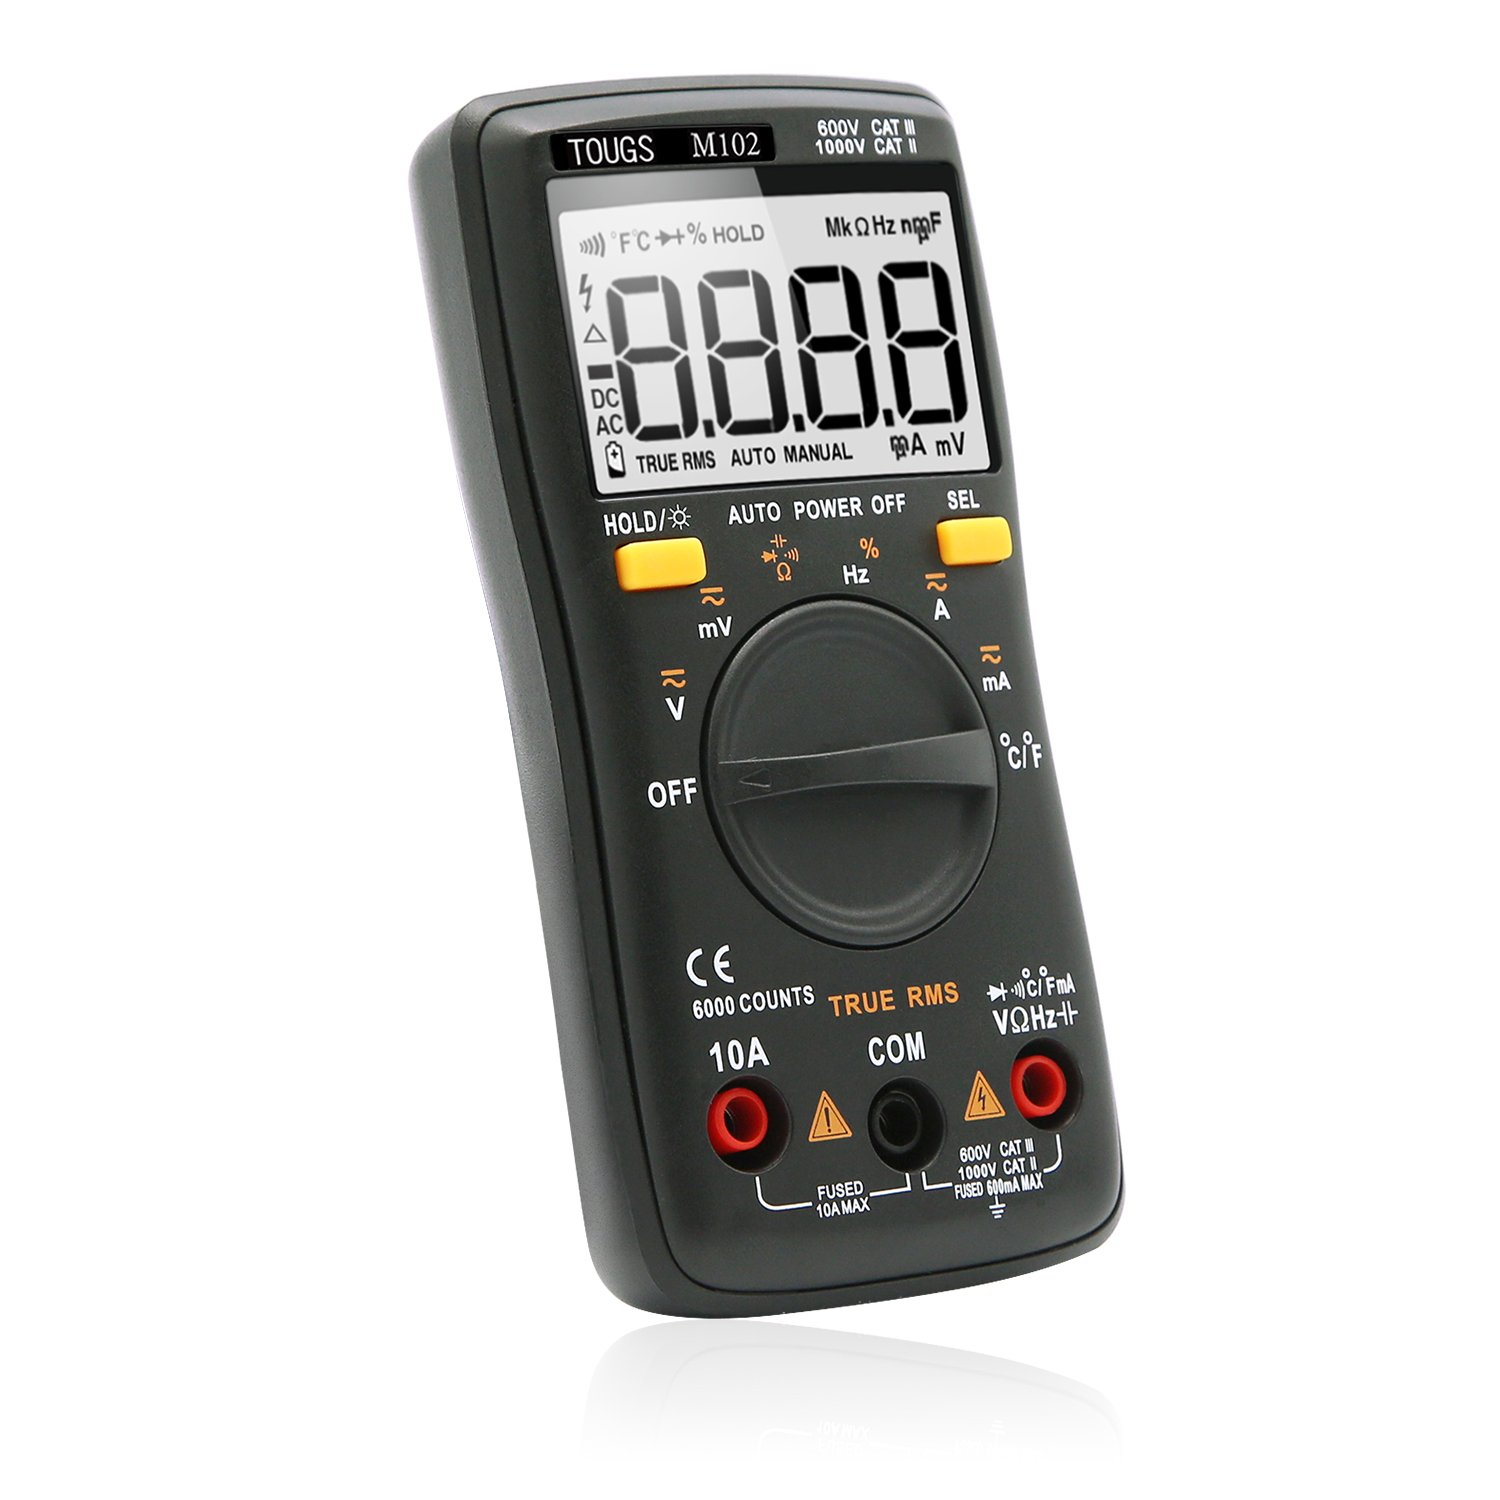 TOUGS M102 Compact True-RMS Digital Multimeter Auto-Ranging 6000 Counts Electronic Measuring Instrument Multi Meter with Self-Calibration Chip and Backlight